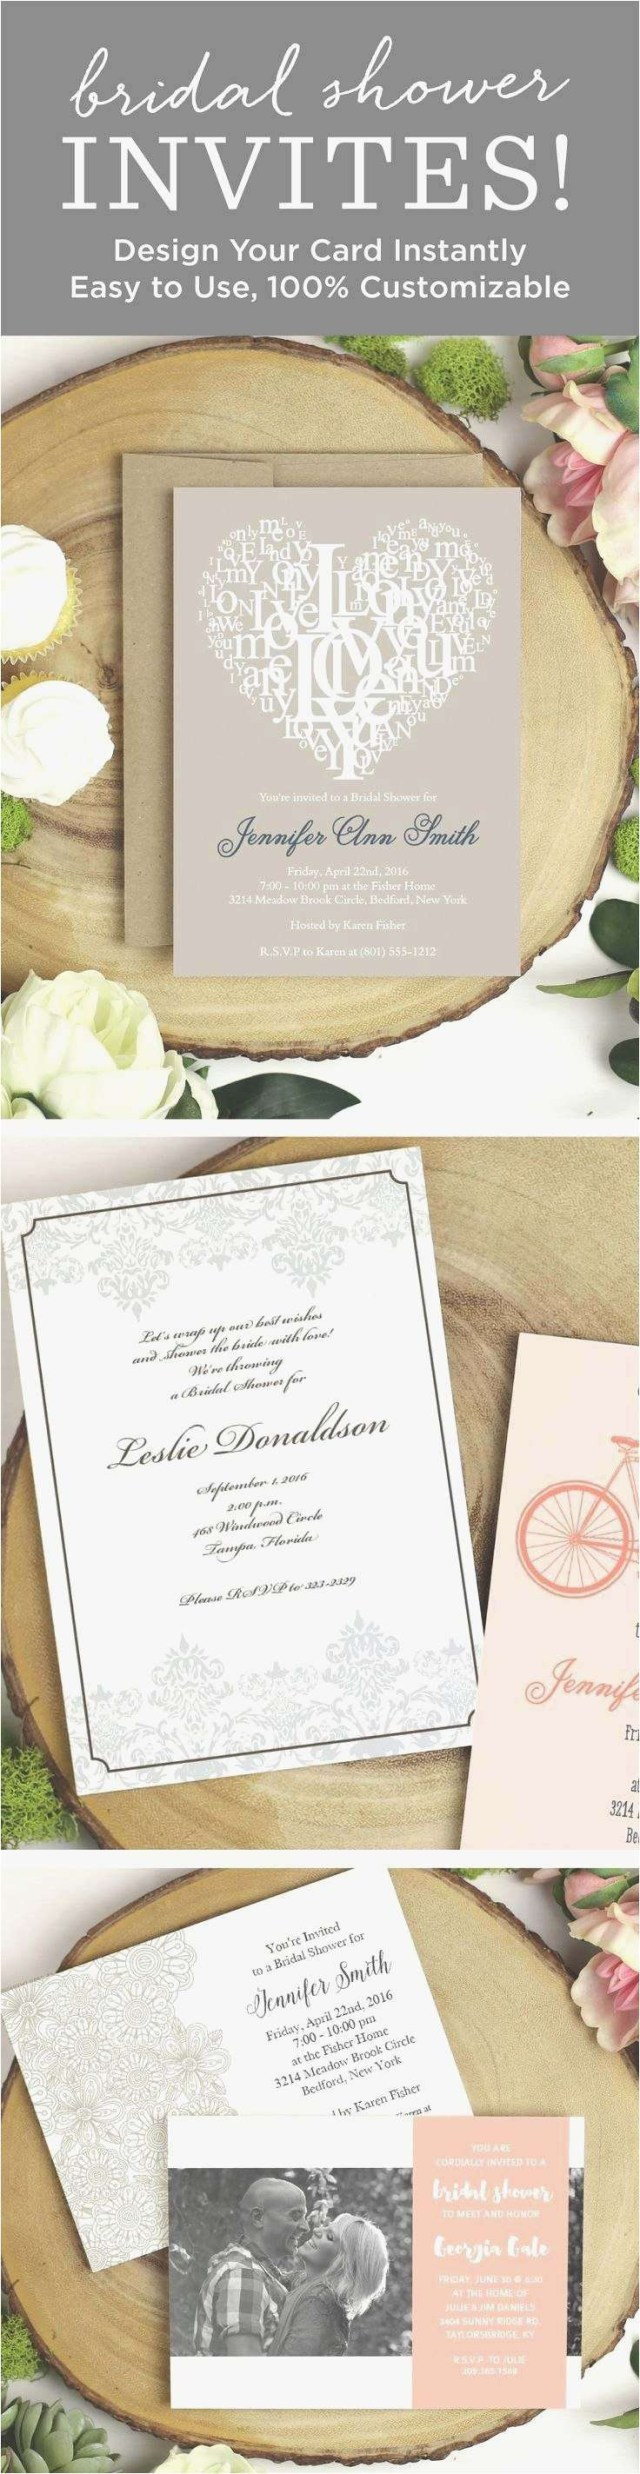 Printing Your Own Wedding Invitations Print Your Own Wedding Invitations Create Your Own Wedding